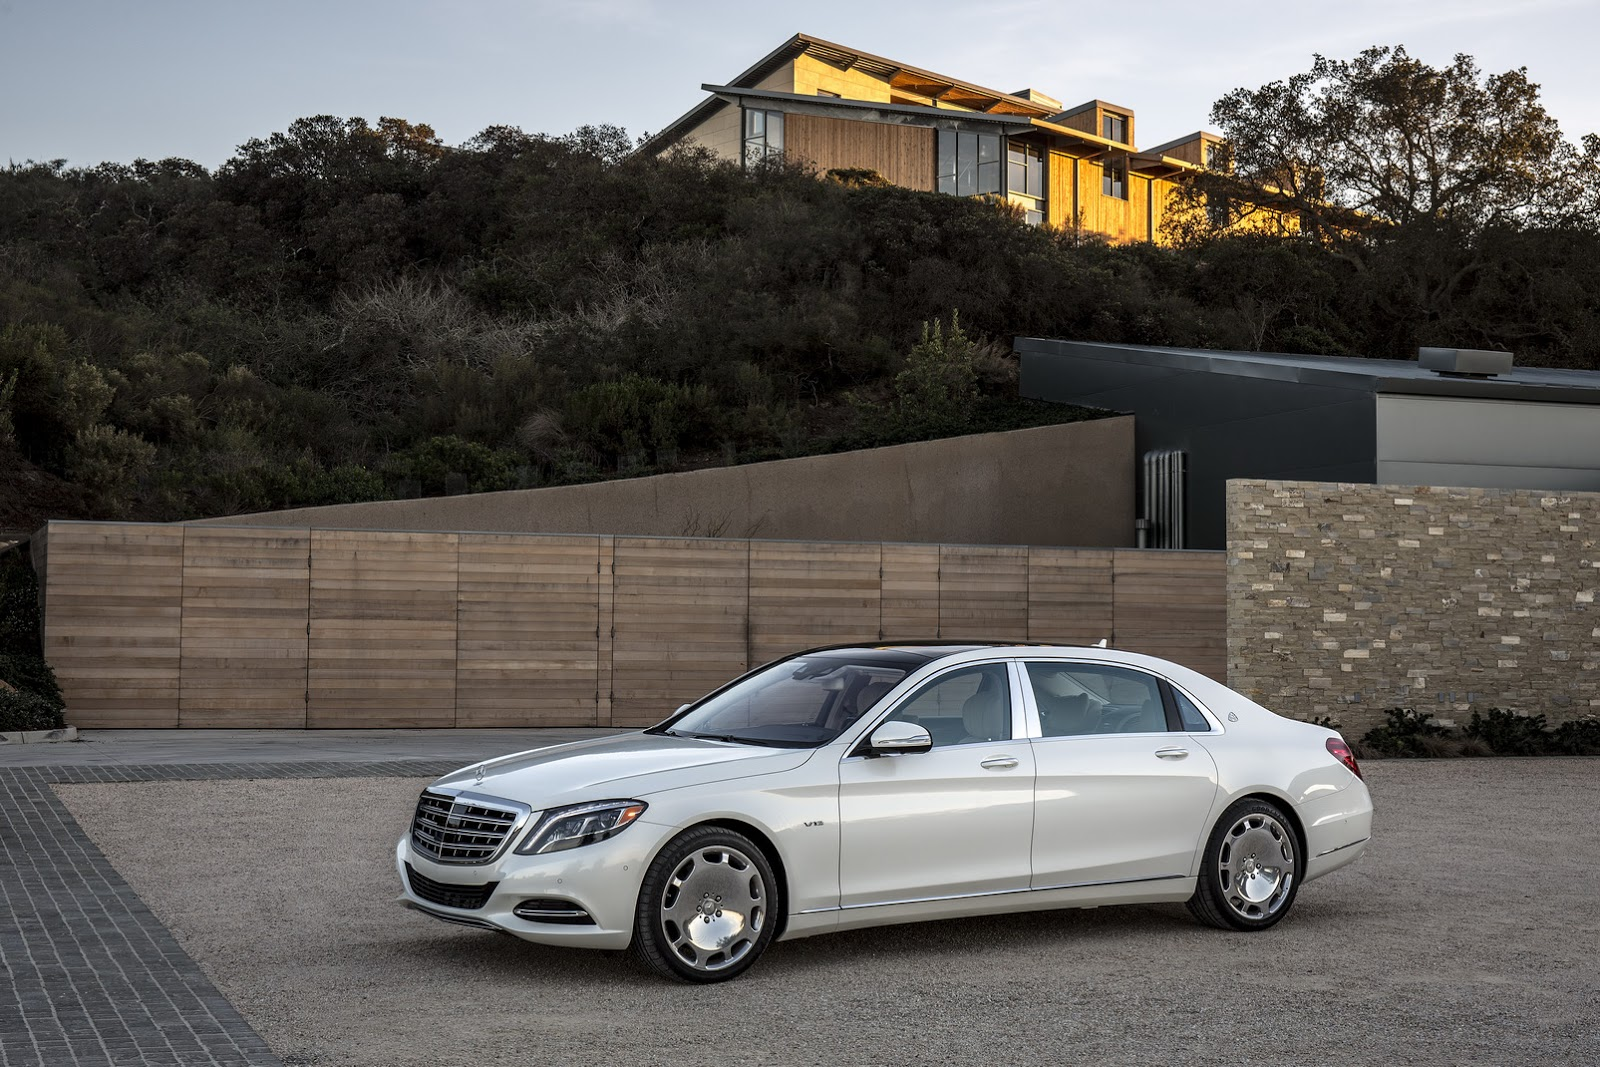 Maxresdefault also Scaldarsi Emperor I Mercedes Maybach S furthermore  in addition Mercedes Benz Maybach Wrap In Frozen Grey likewise Mercedes Benz Cl Coupe Wallpaper. on mercedes s600 v12 coupe